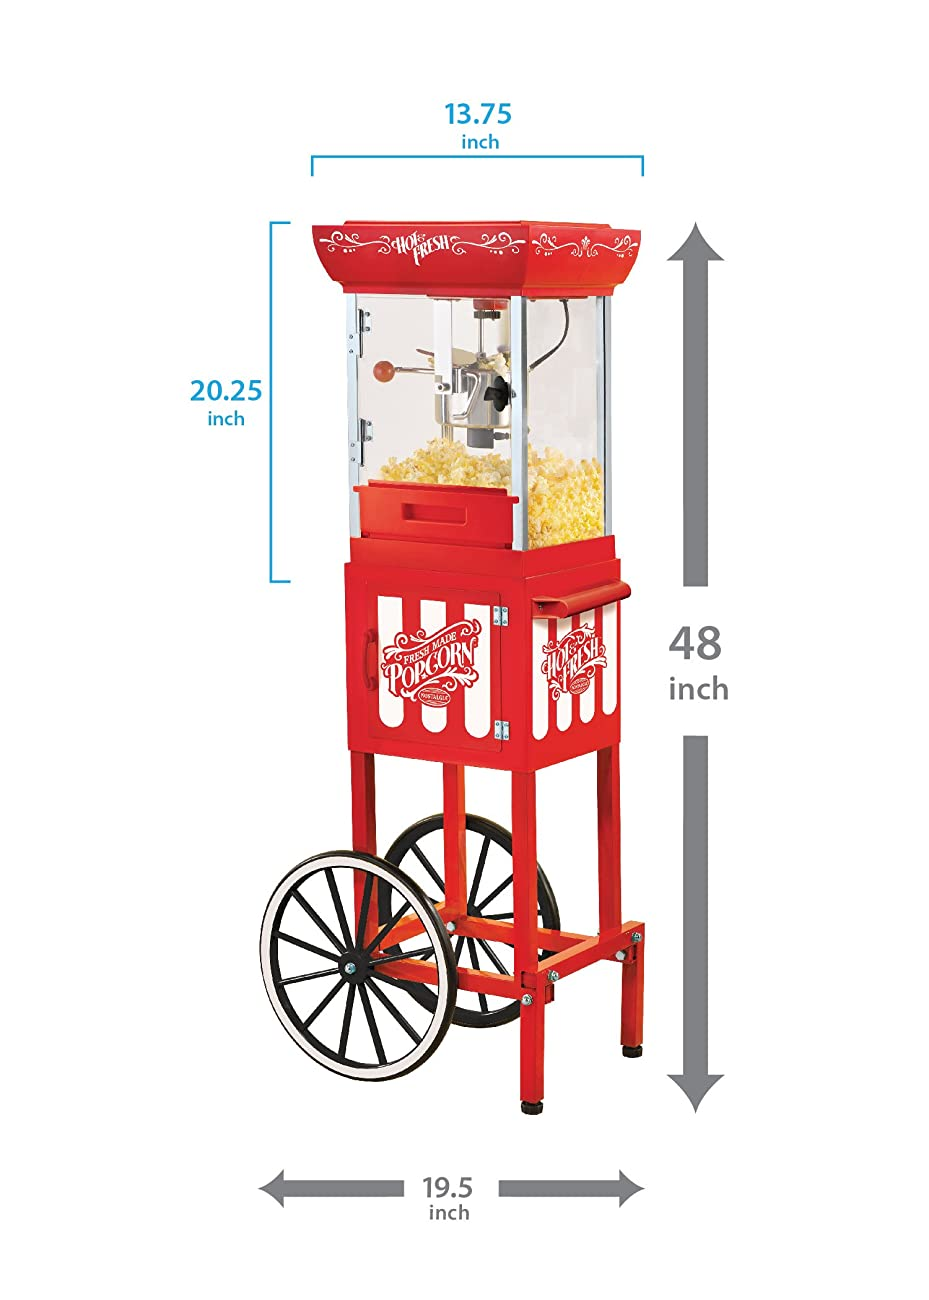 Nostalgia CCP399 48-Inch Tall Vintage Collection 2.5-Ounce Kettle Popcorn Cart 3